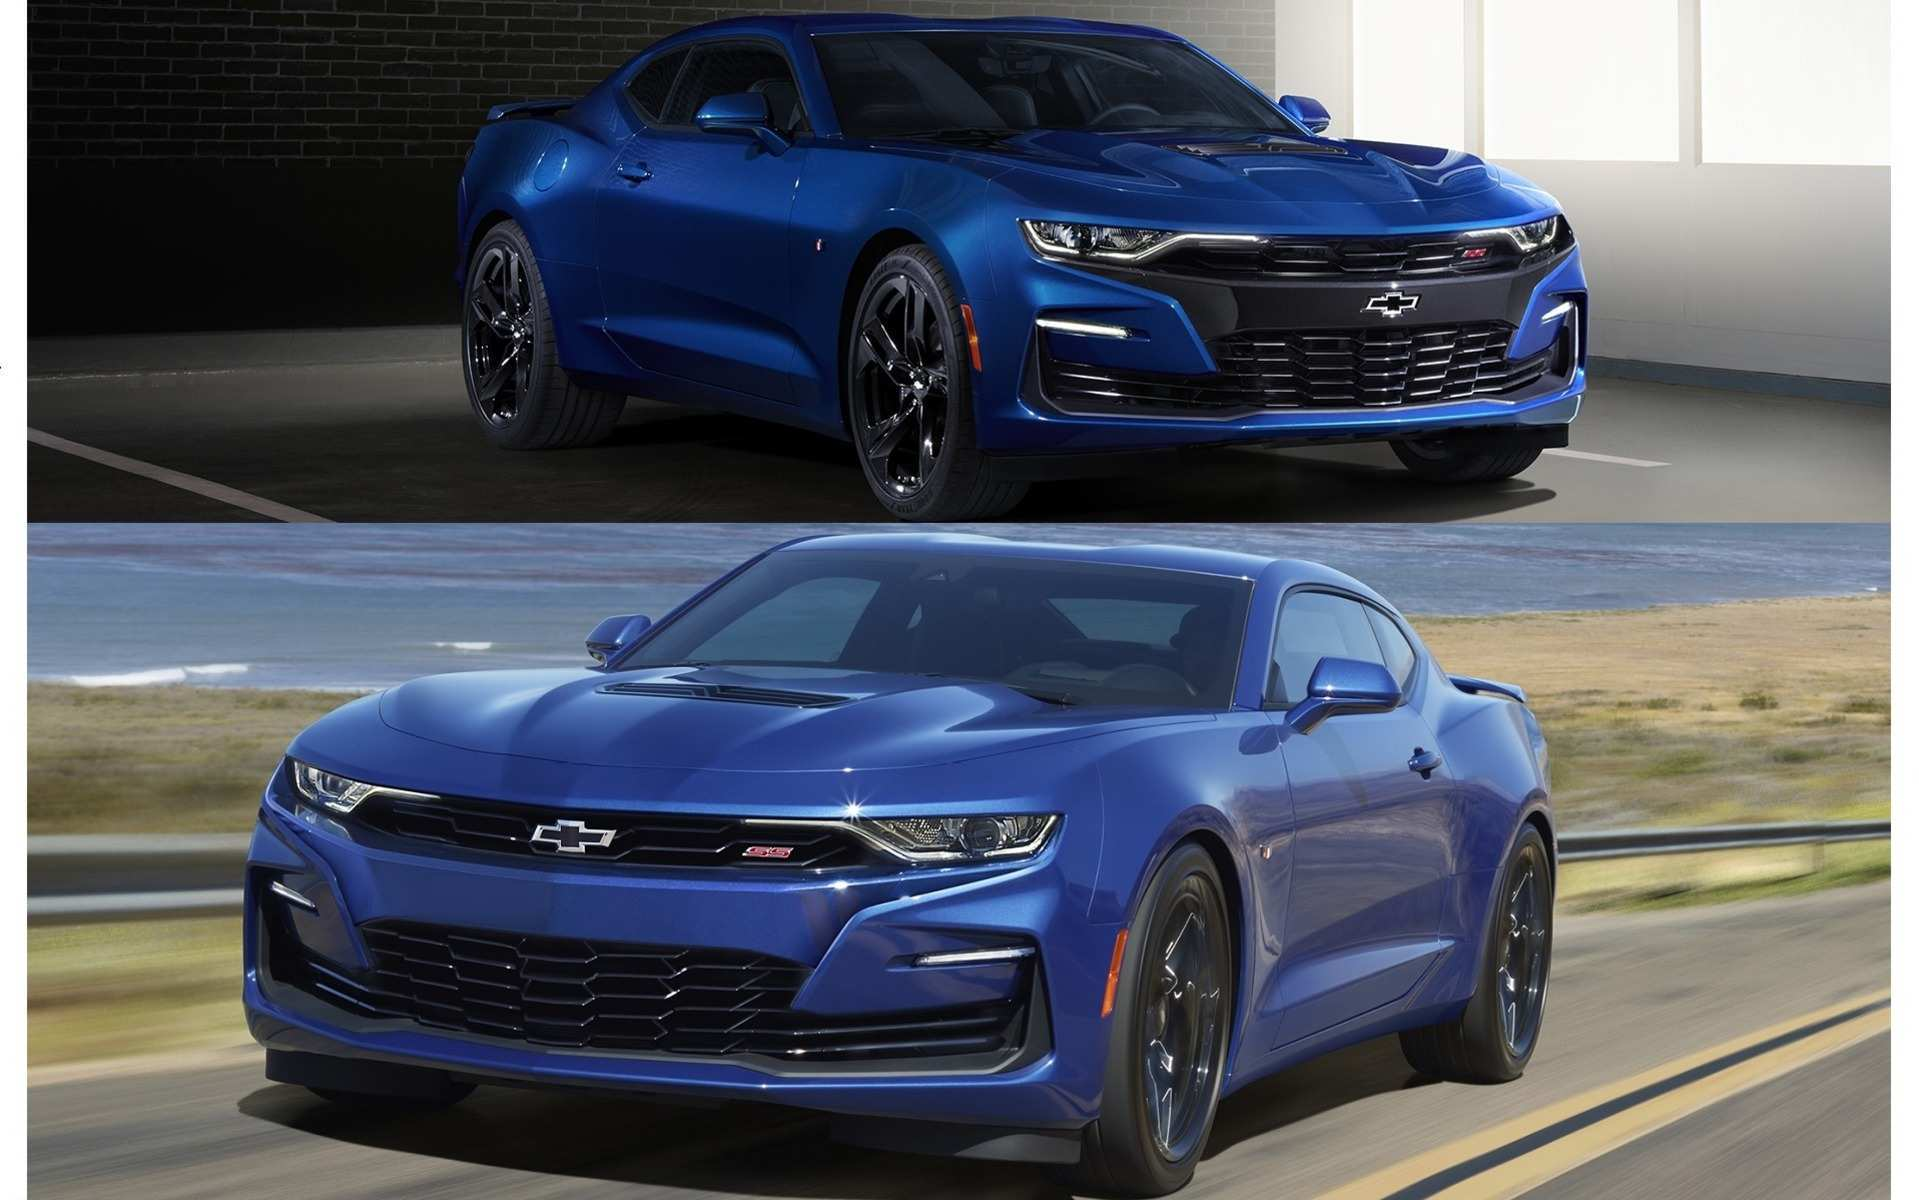 74 All New 2020 Chevy Camaro Spy Shoot